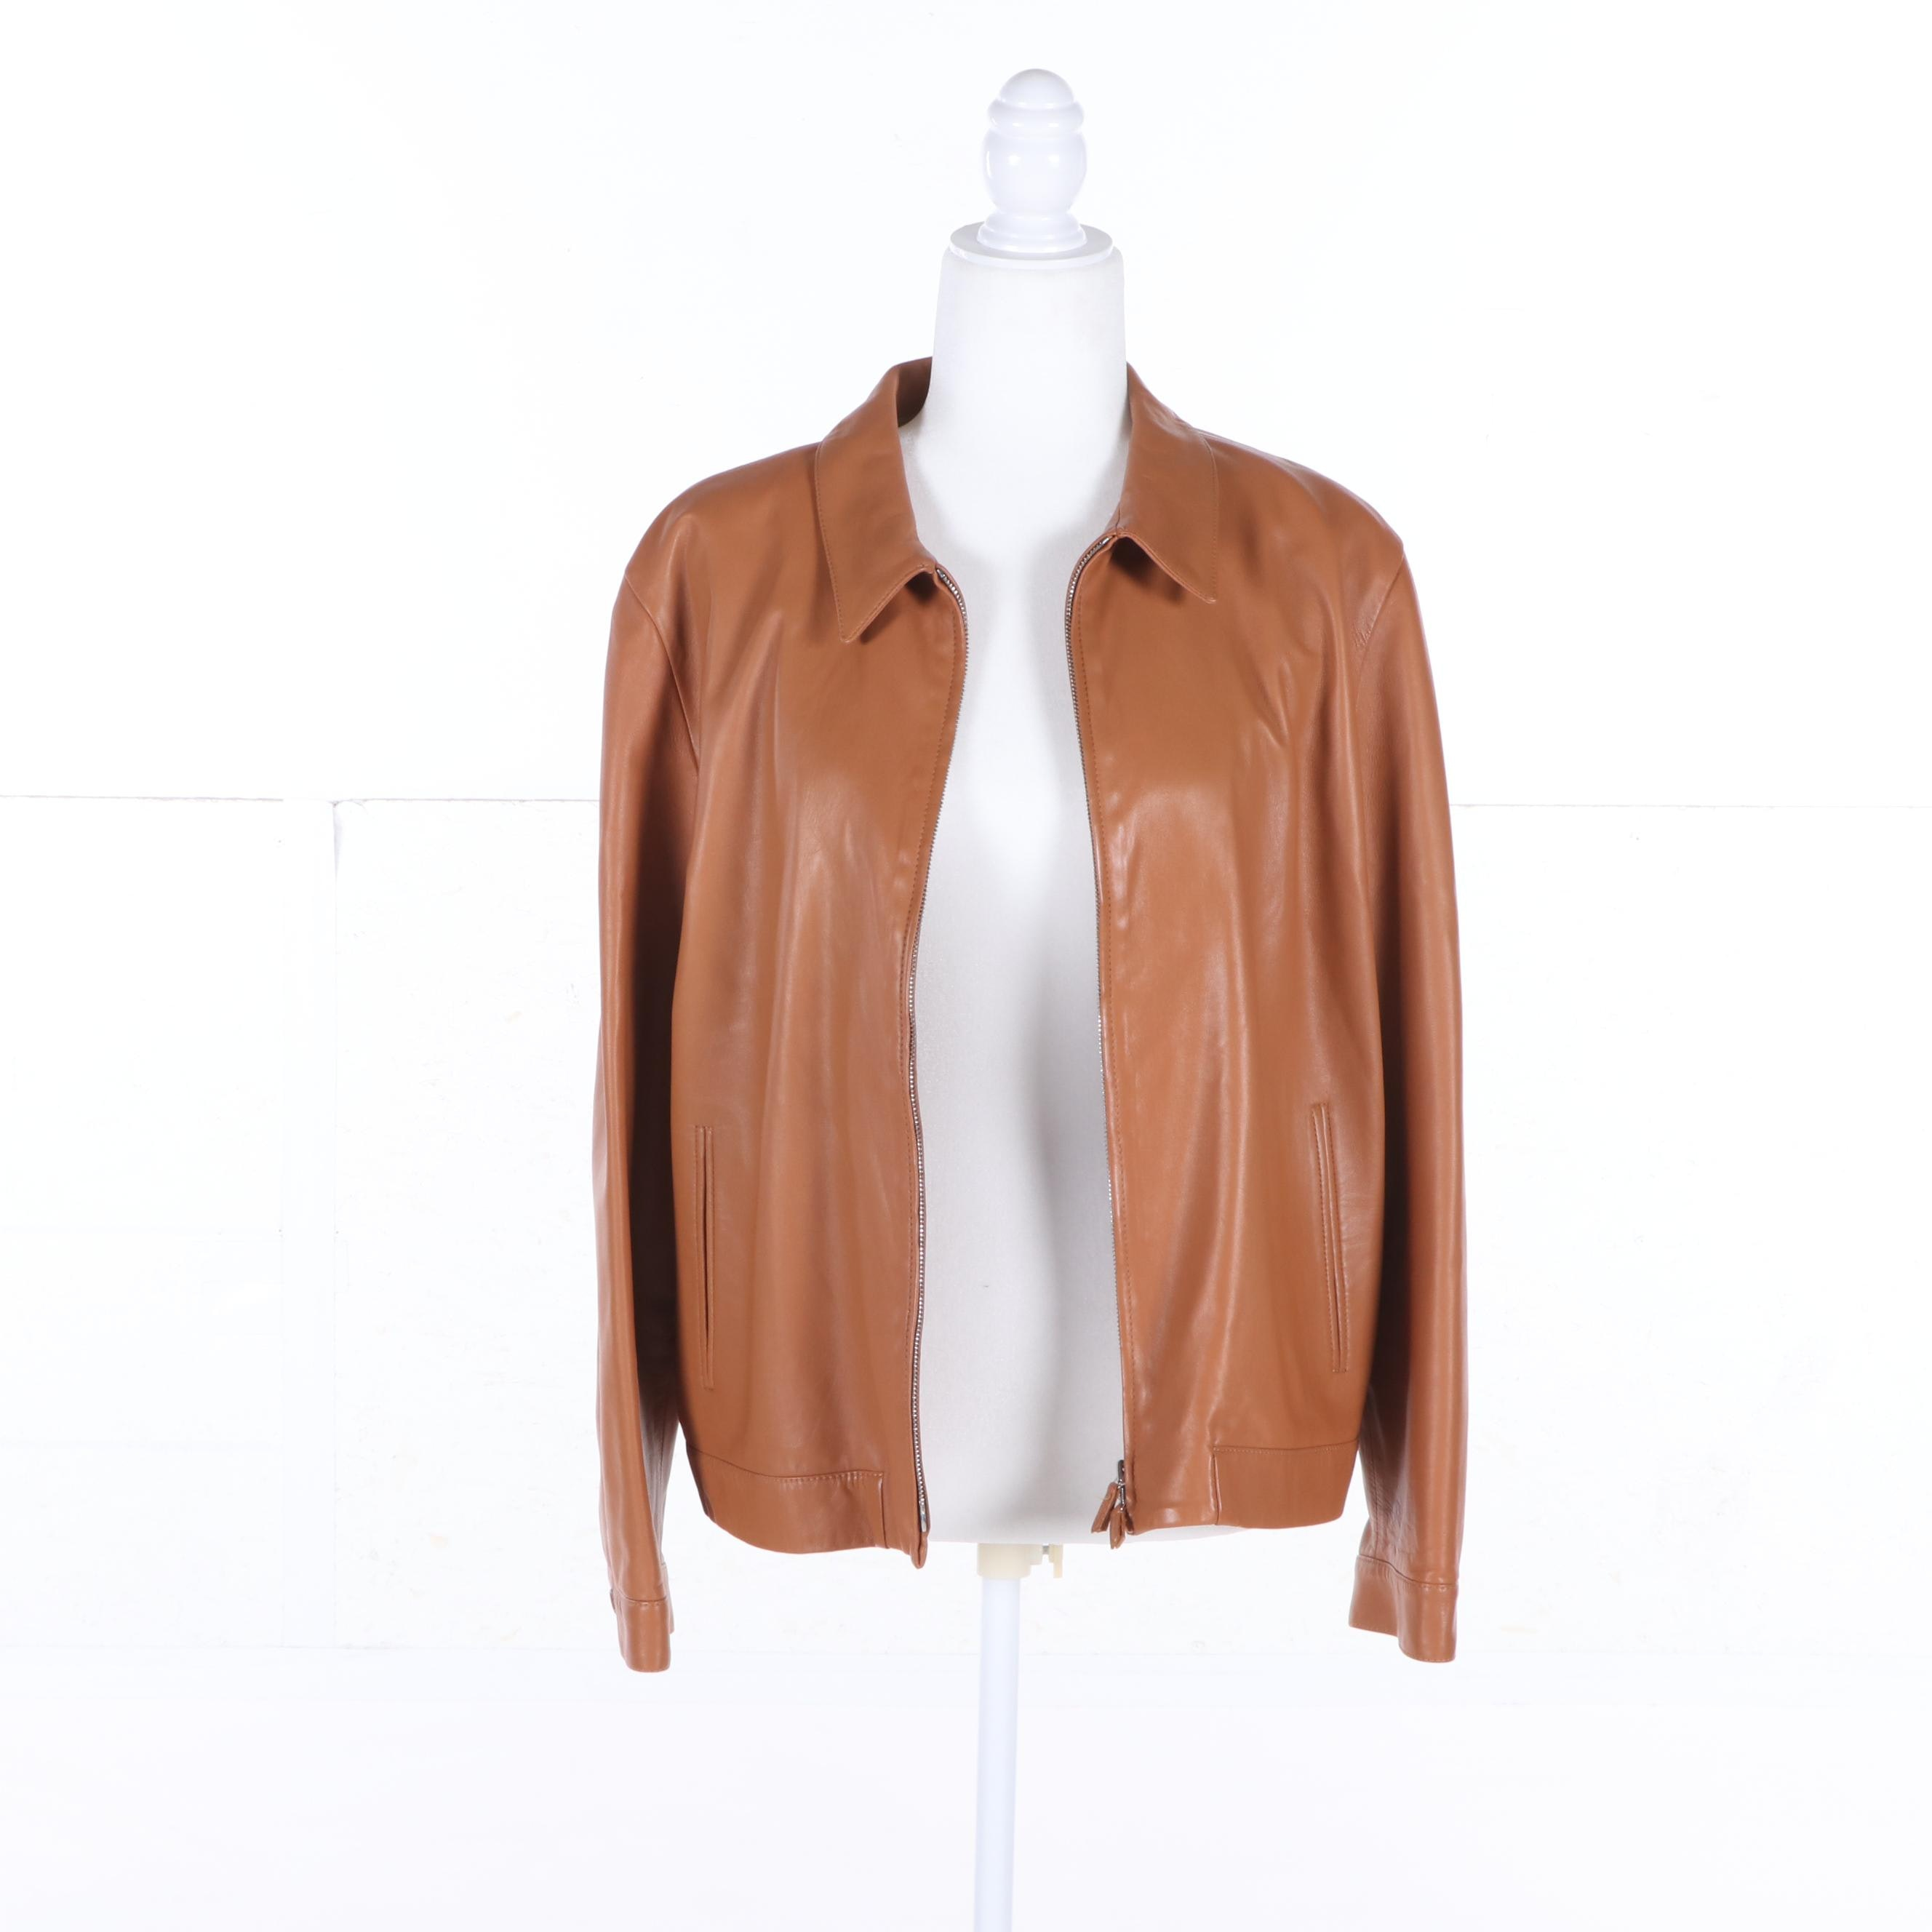 Women's Piazza Sempione Leather Jacket, Made in Italy